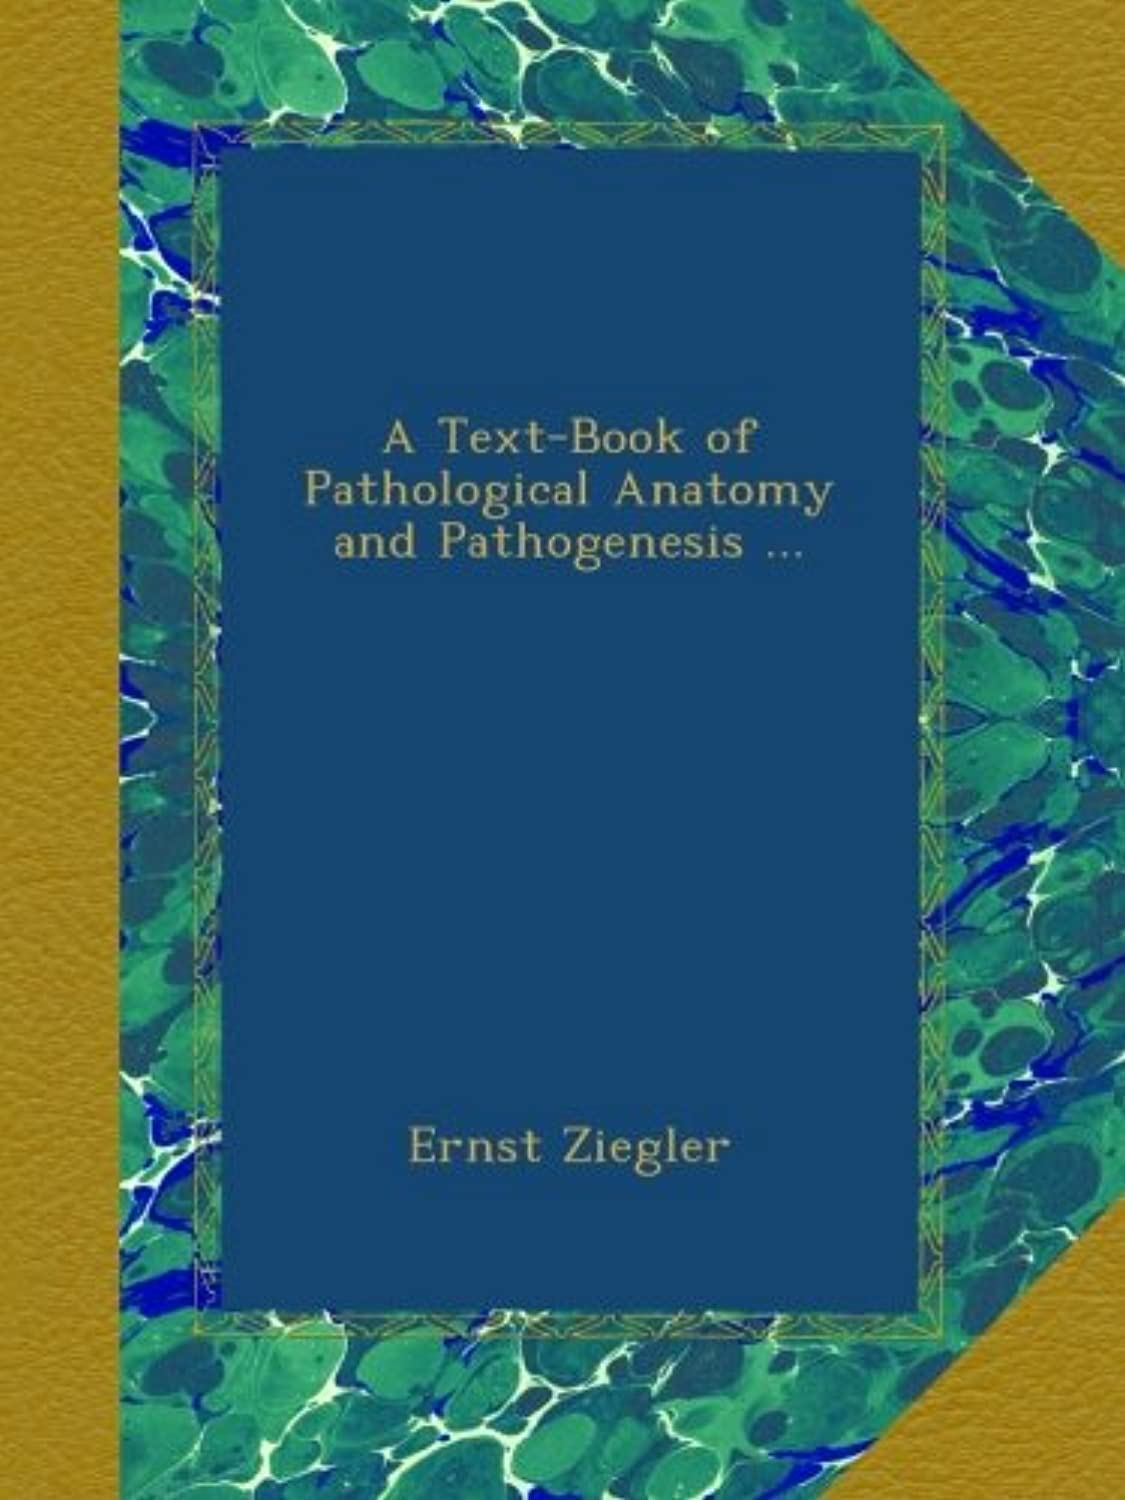 A Text-Book of Pathological Anatomy and Pathogenesis ...